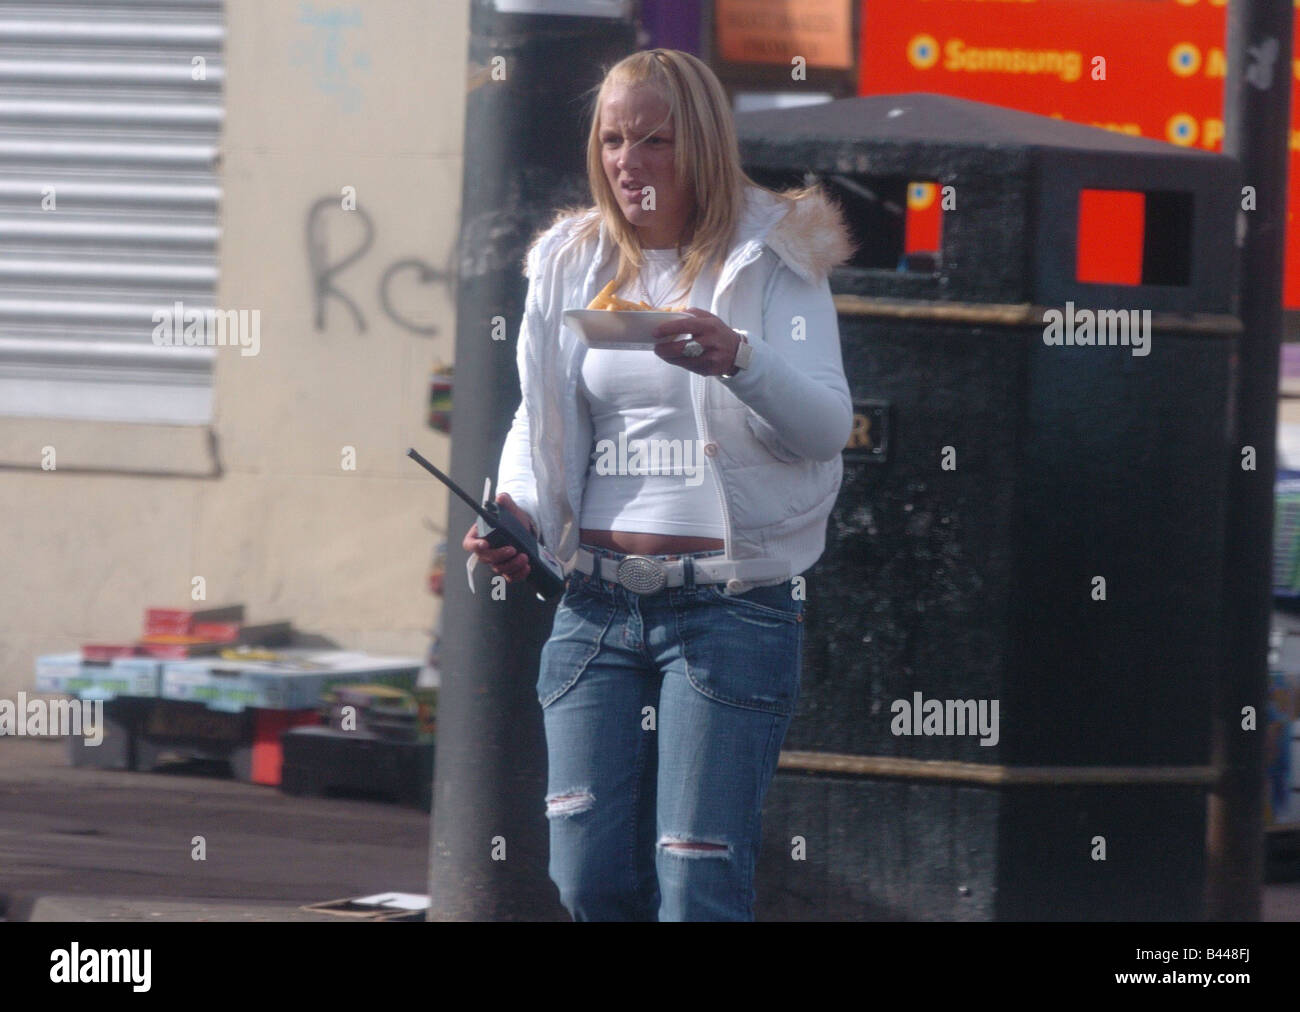 Rogue traders barras Glasgow February 2005 Selling smuggled cigarettes using youngsters armed with walkie talkies - Stock Image